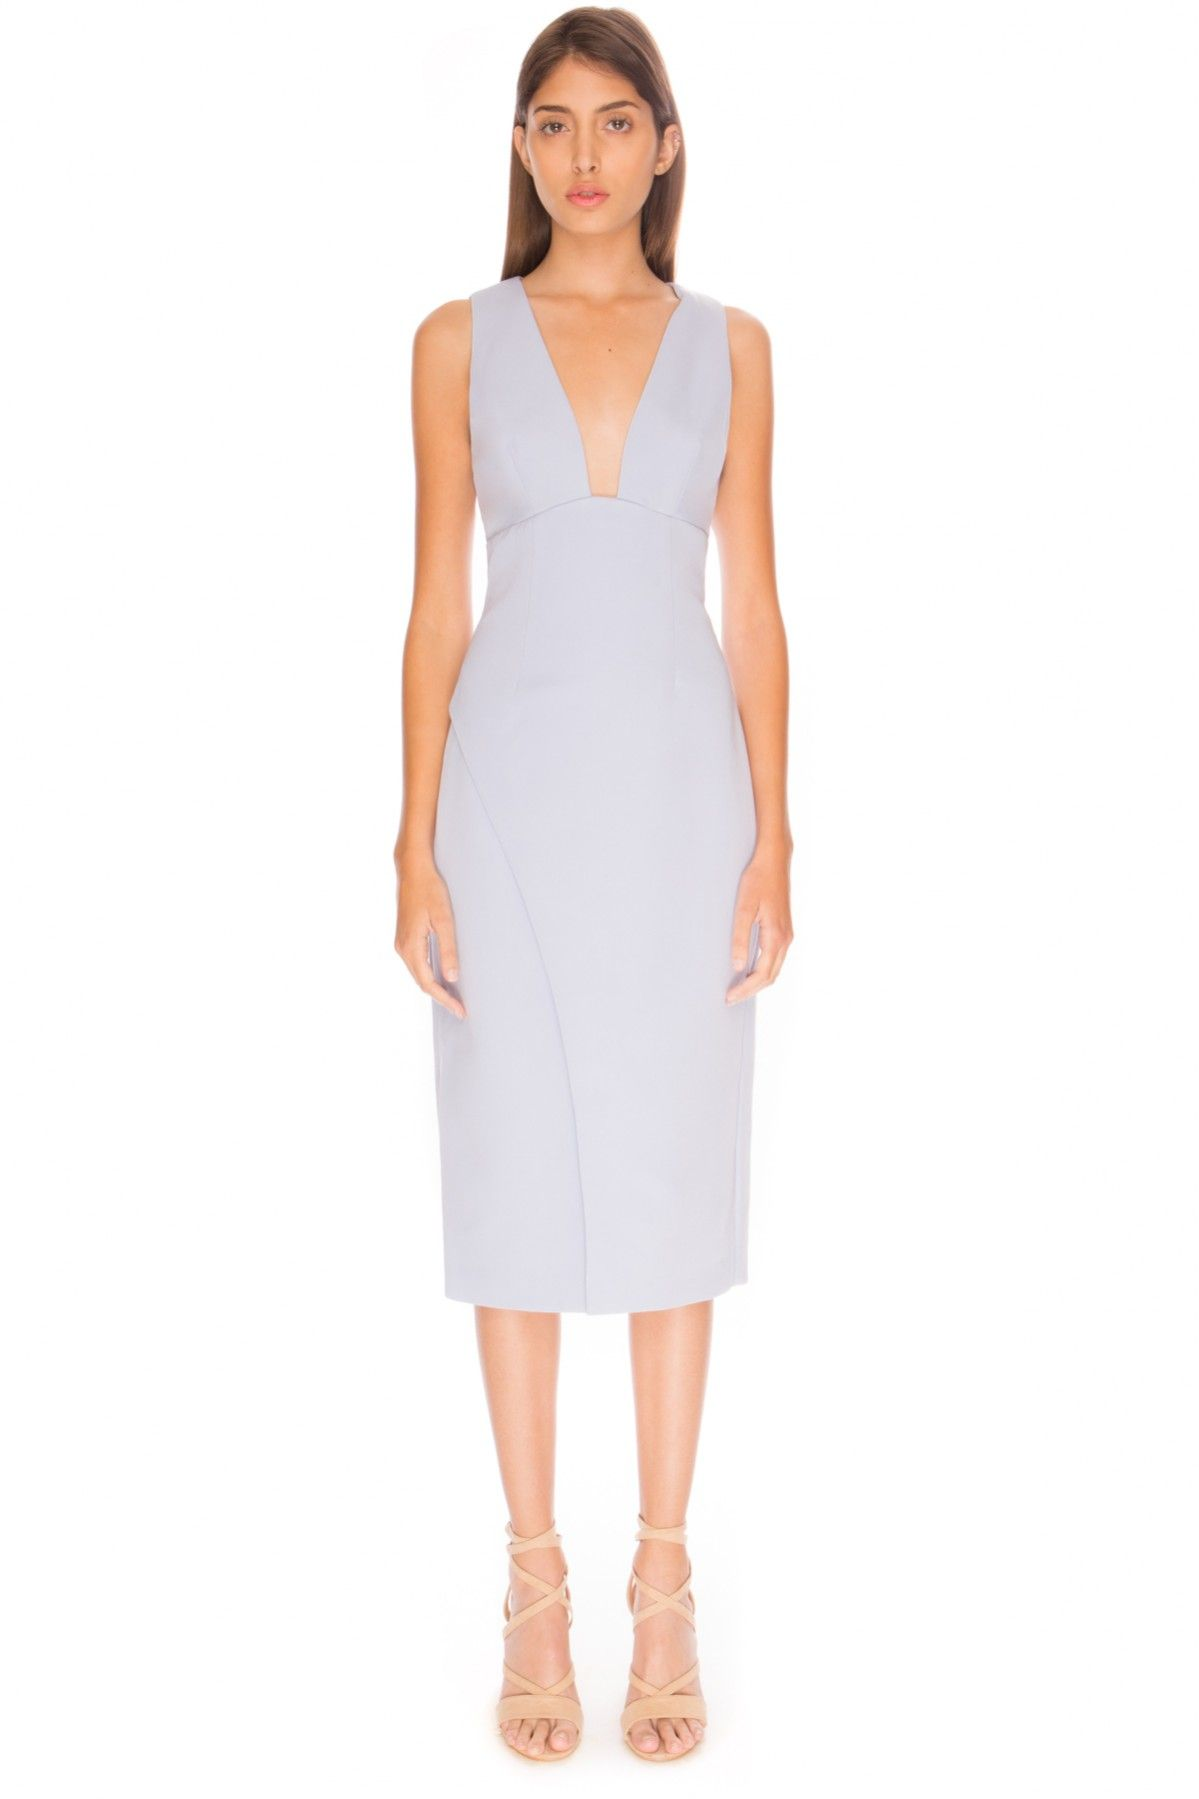 Womens Enough Space Midi Sleeveless Dress Keepsake the Label New Cheap Online Free Shipping With Mastercard Buy Cheap Footlocker Cheap Footlocker Finishline Outlet Visit New 80uG0K